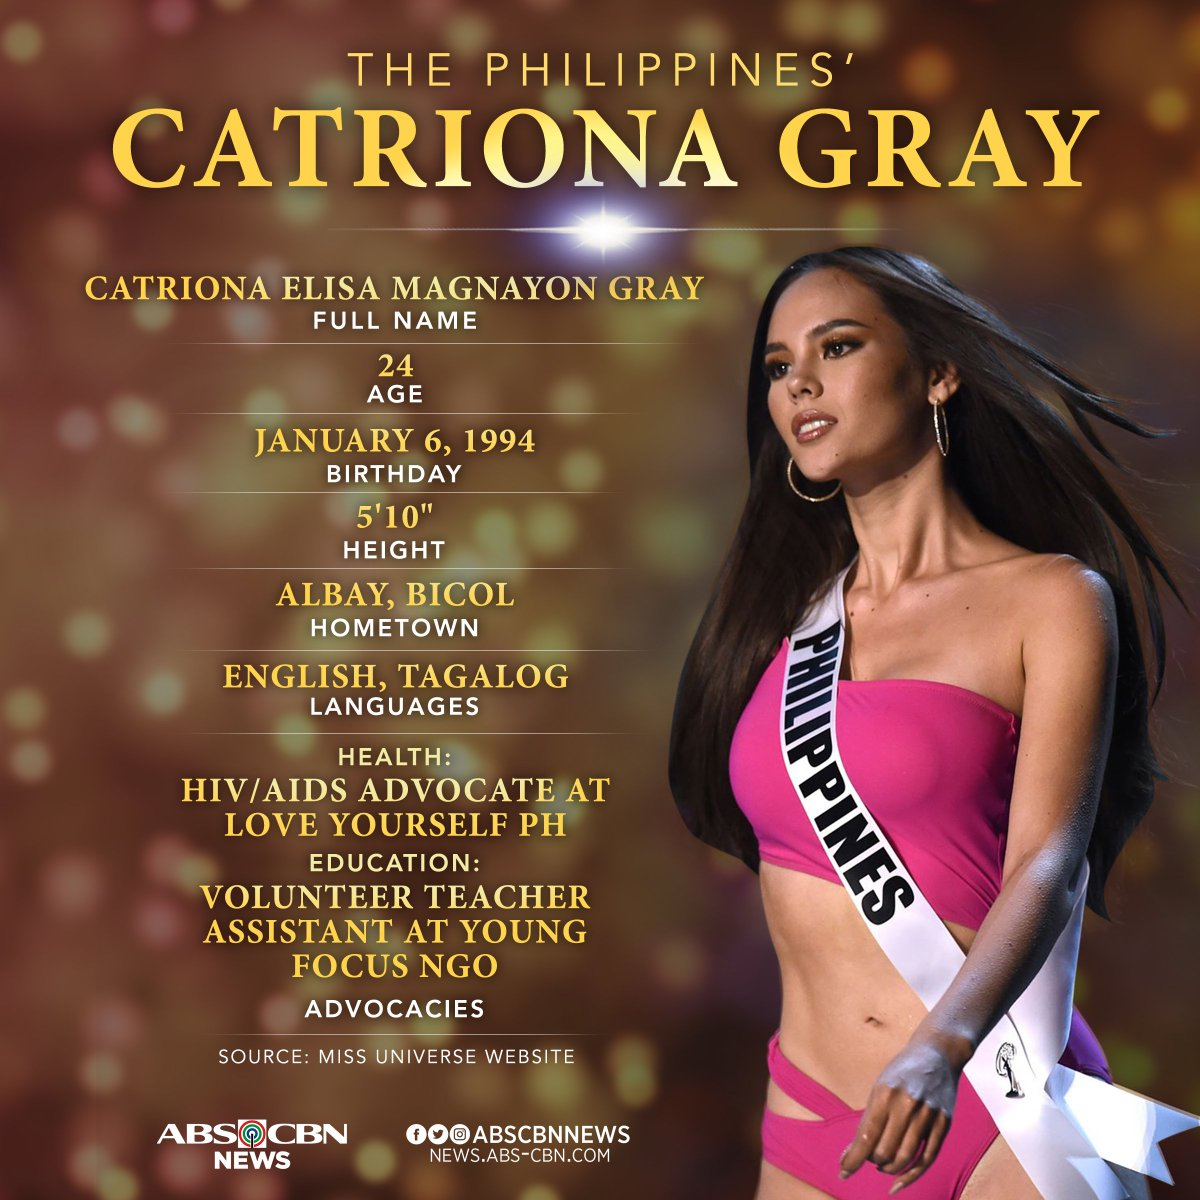 Catriona Gray is much more than just a pretty face. Here's what you need to know about the Philippines' bet in the #MissUniverse 2018 pageant.